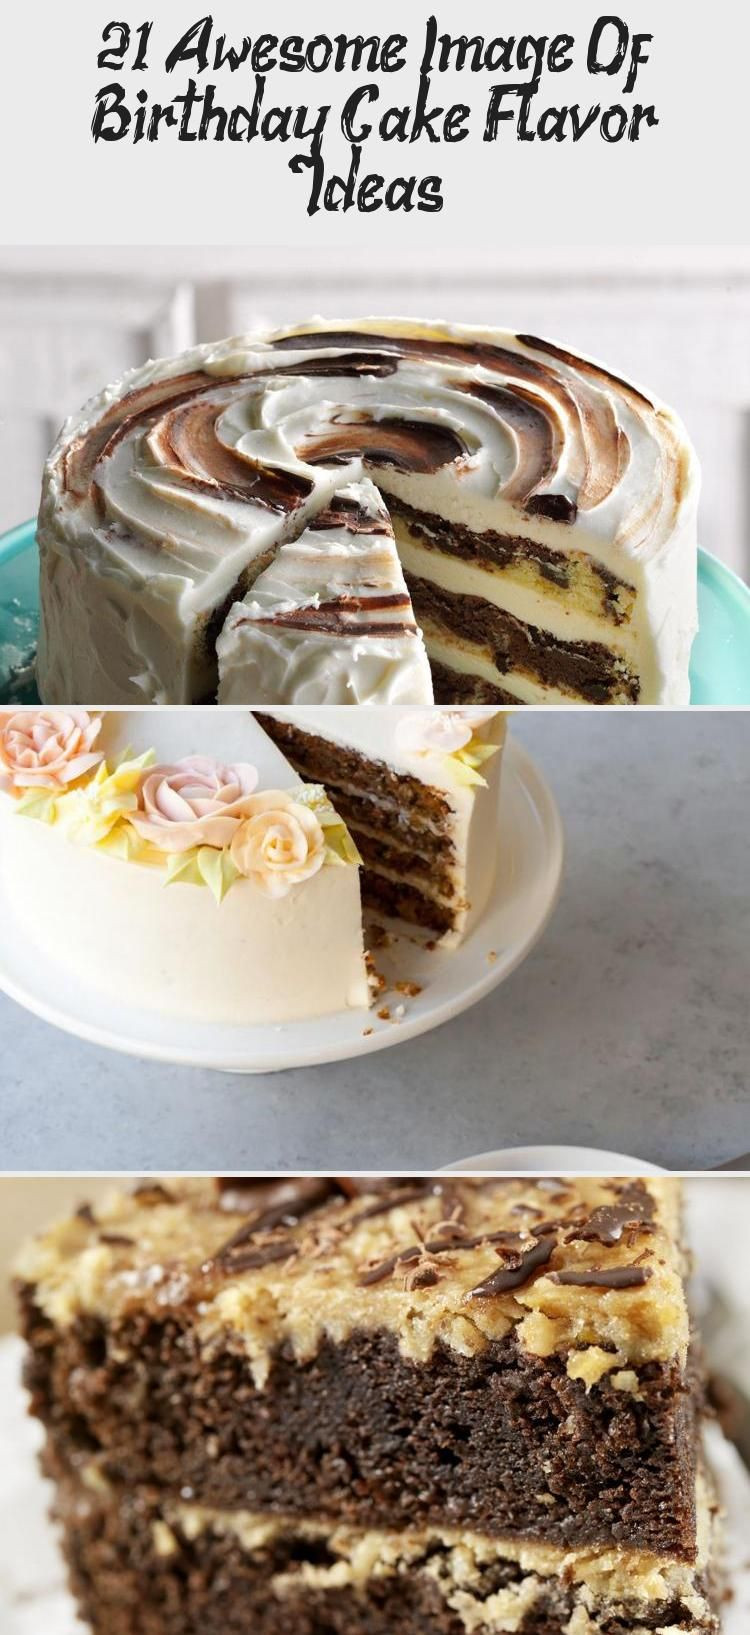 Birthday Cake Flavor Ideas  21 Awesome Image Birthday Cake Flavor Ideas